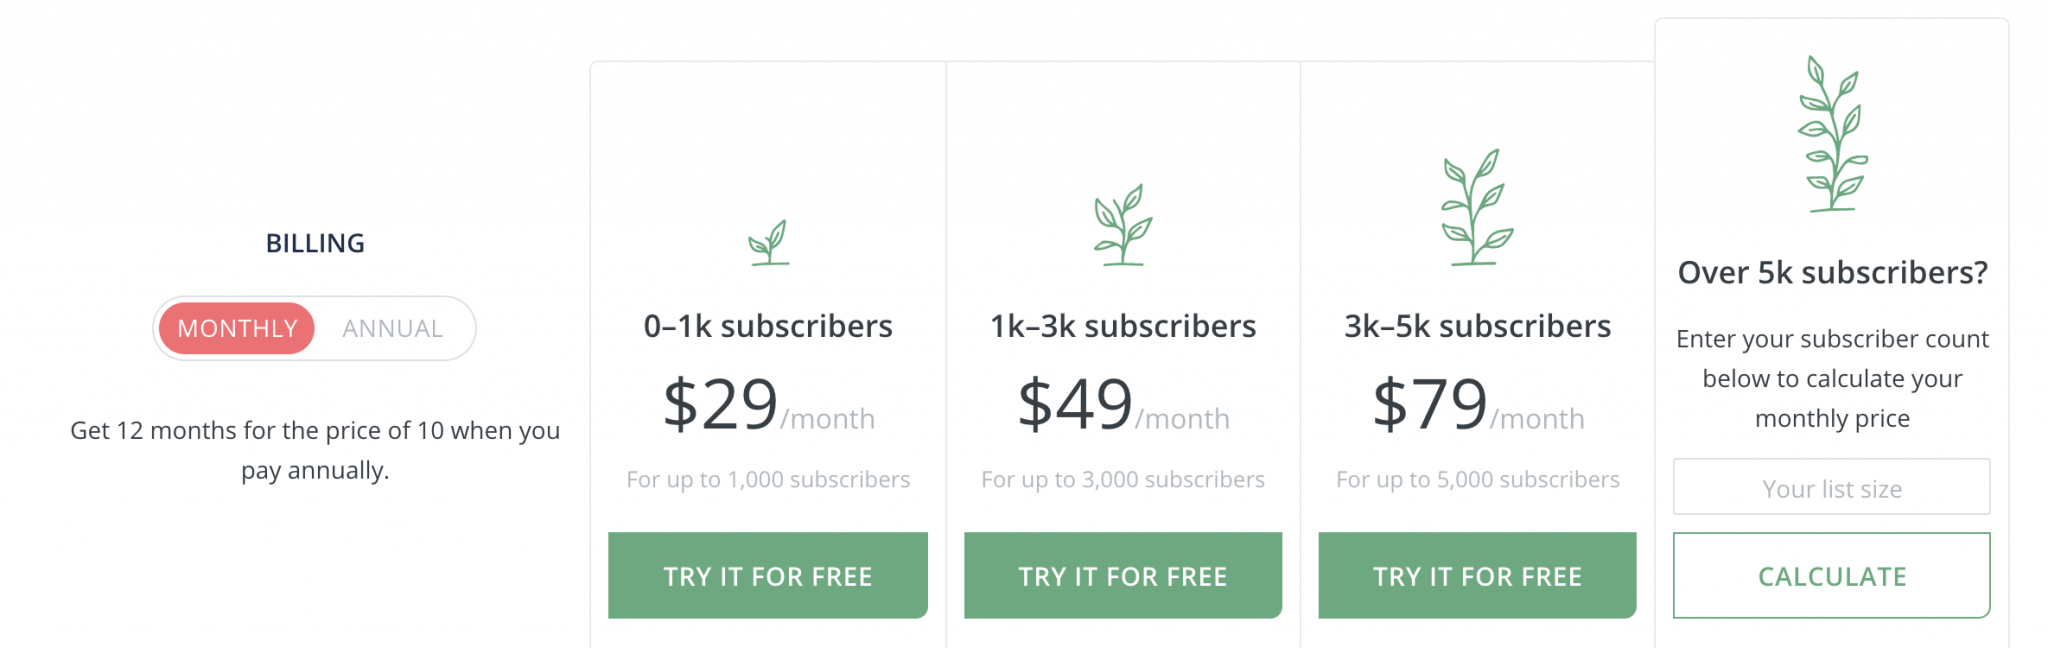 75% Off Voucher Code Convertkit Email Marketing May